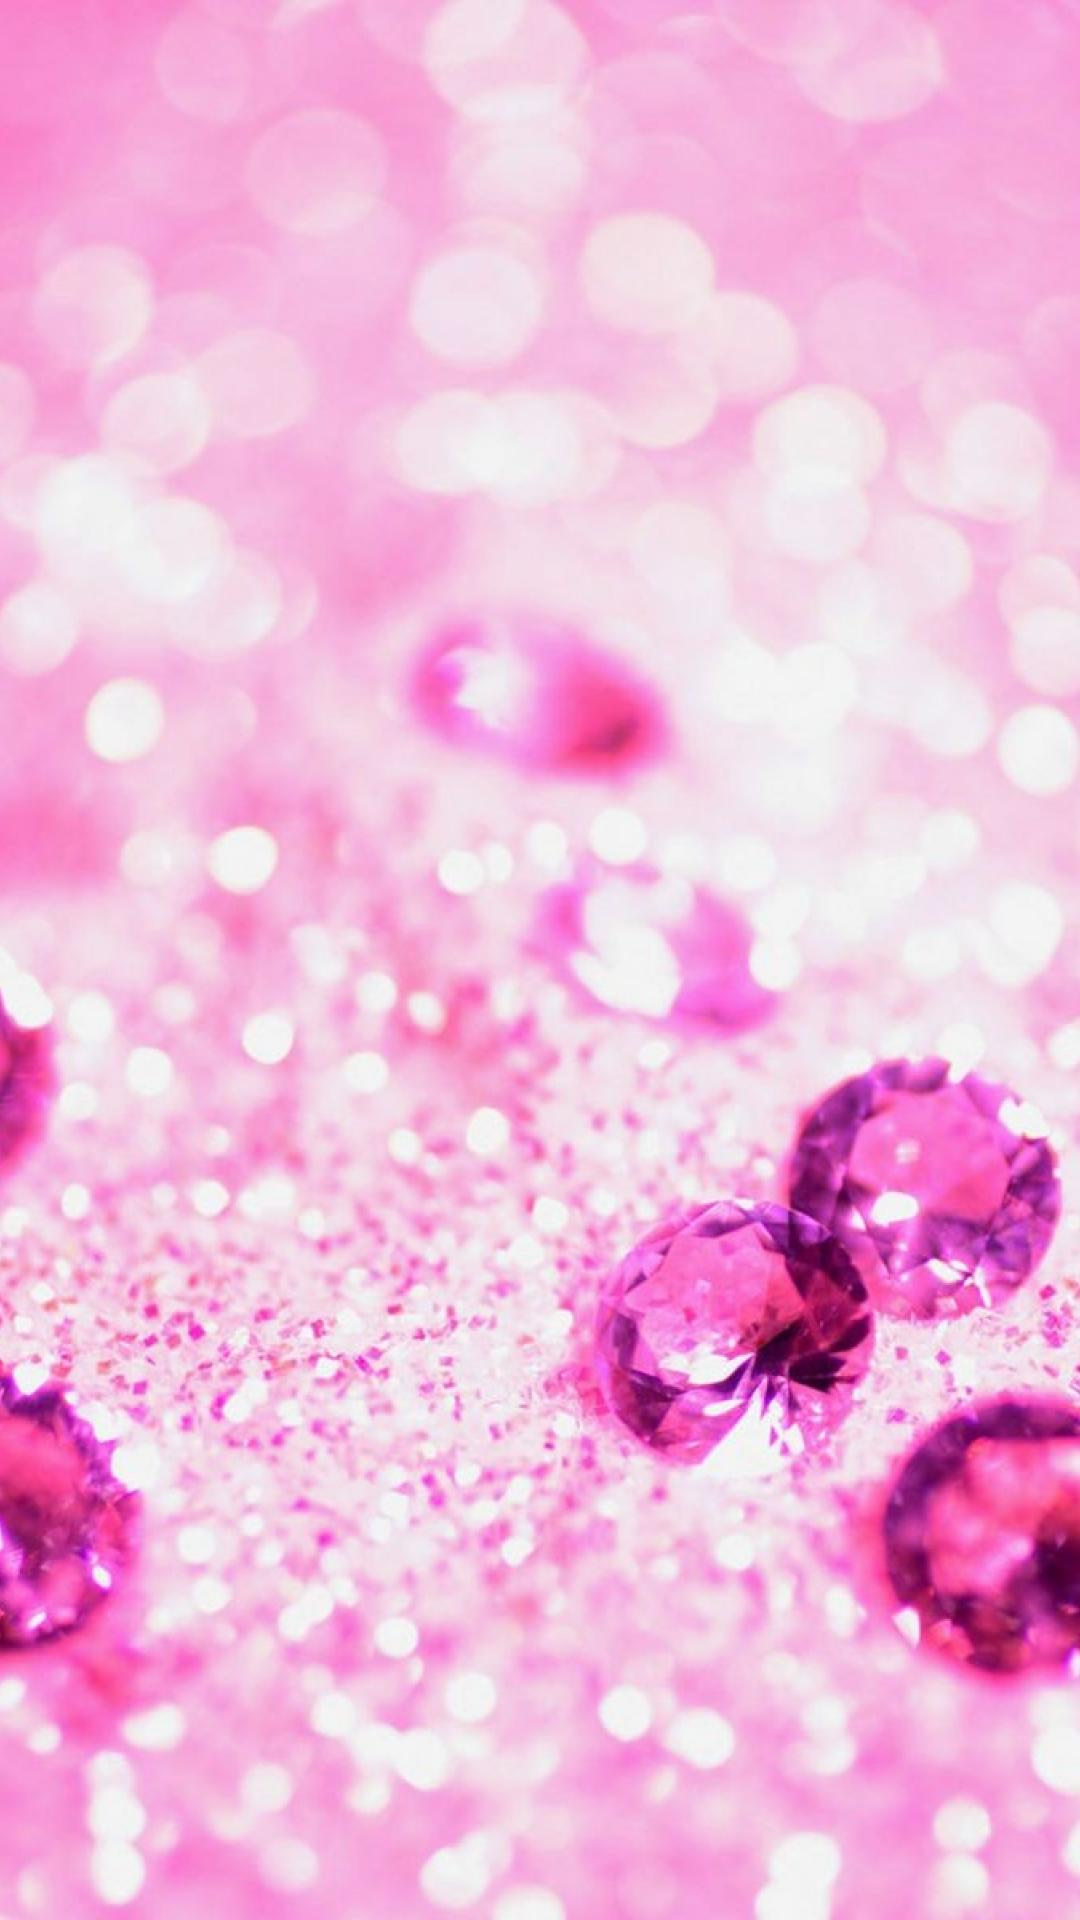 Lots Of Pink Jewelry Girly Glitter Iphone Wallpapers Iphone